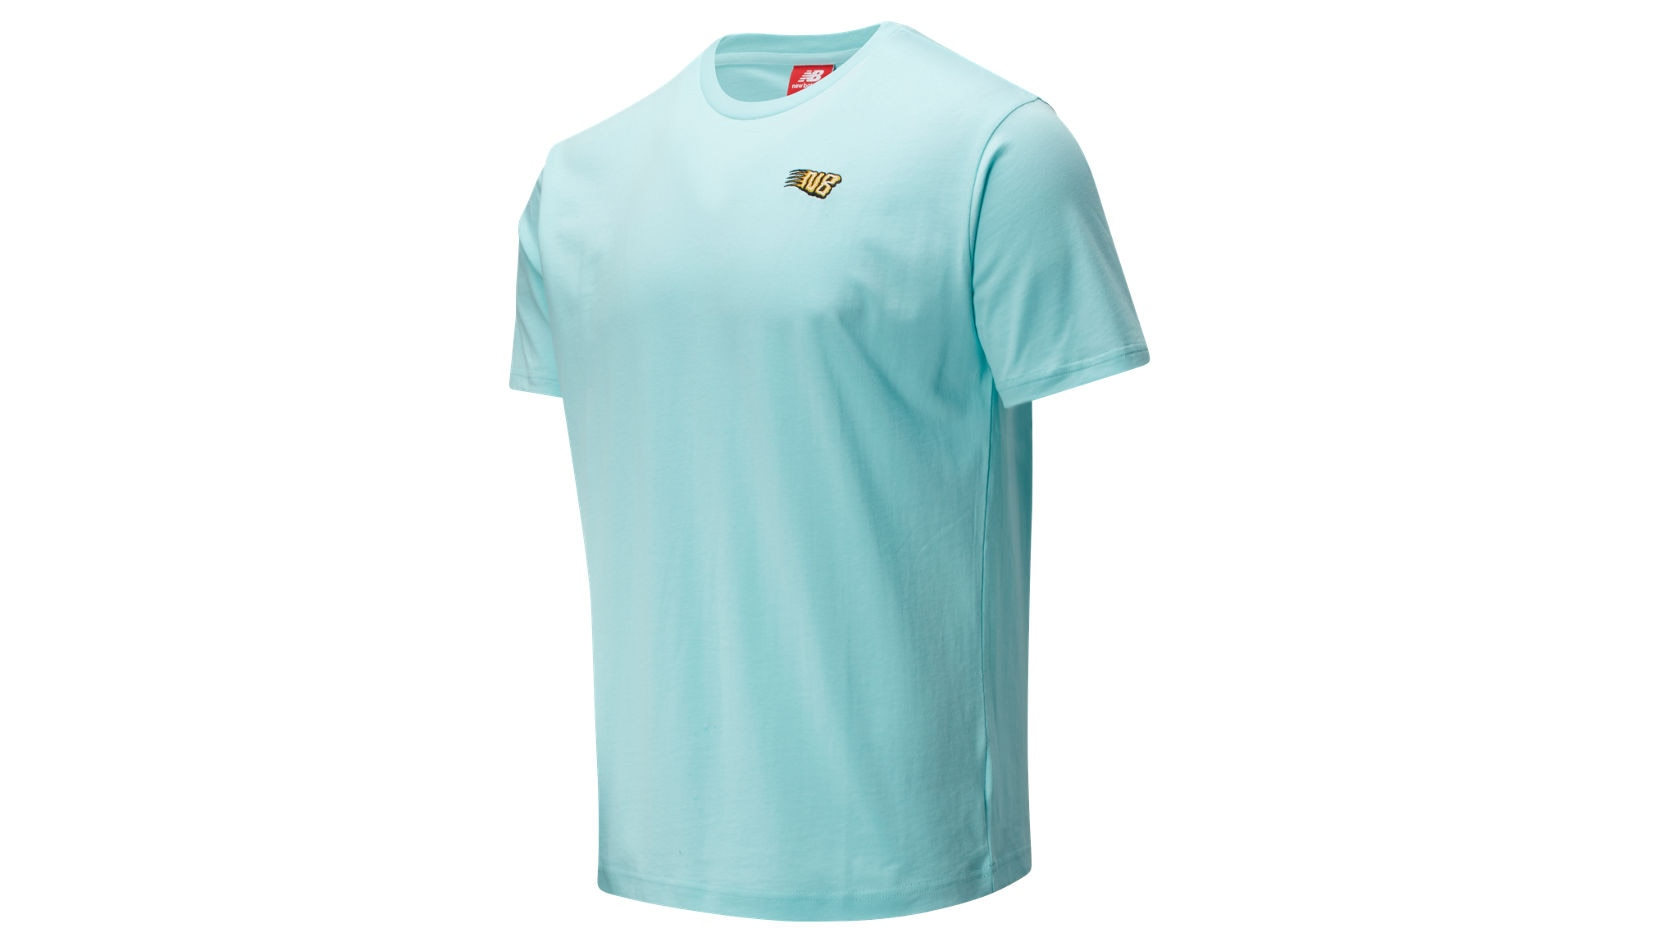 NB ATHLETICS TROPIC T